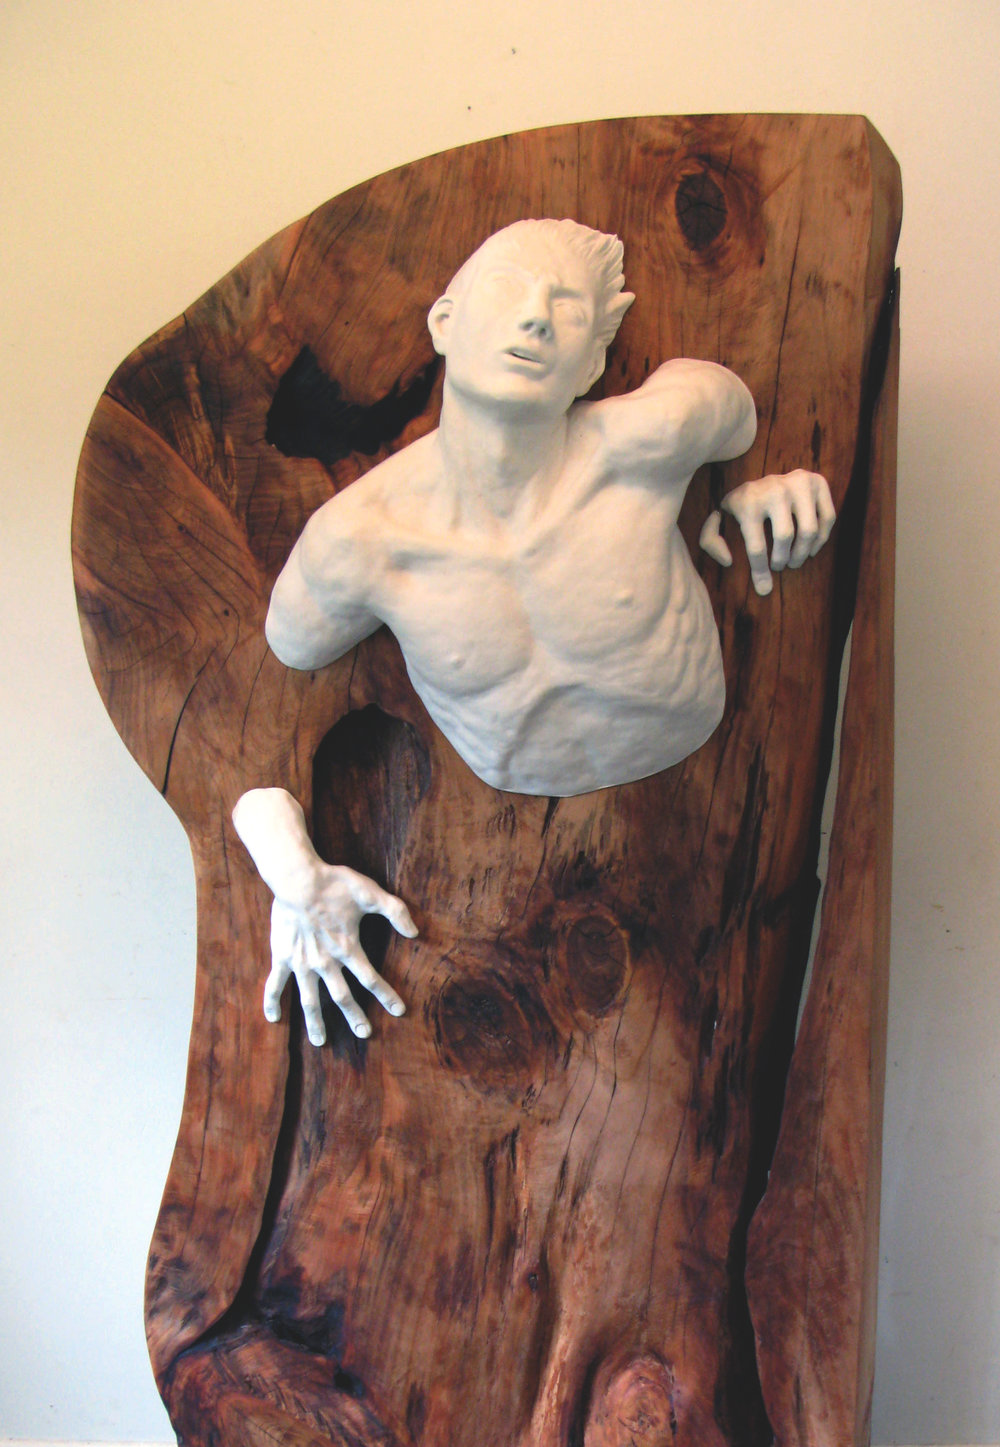 This sculpture was featured in a group art show at the Community Art Gallery on Waiheke Island, NZ.